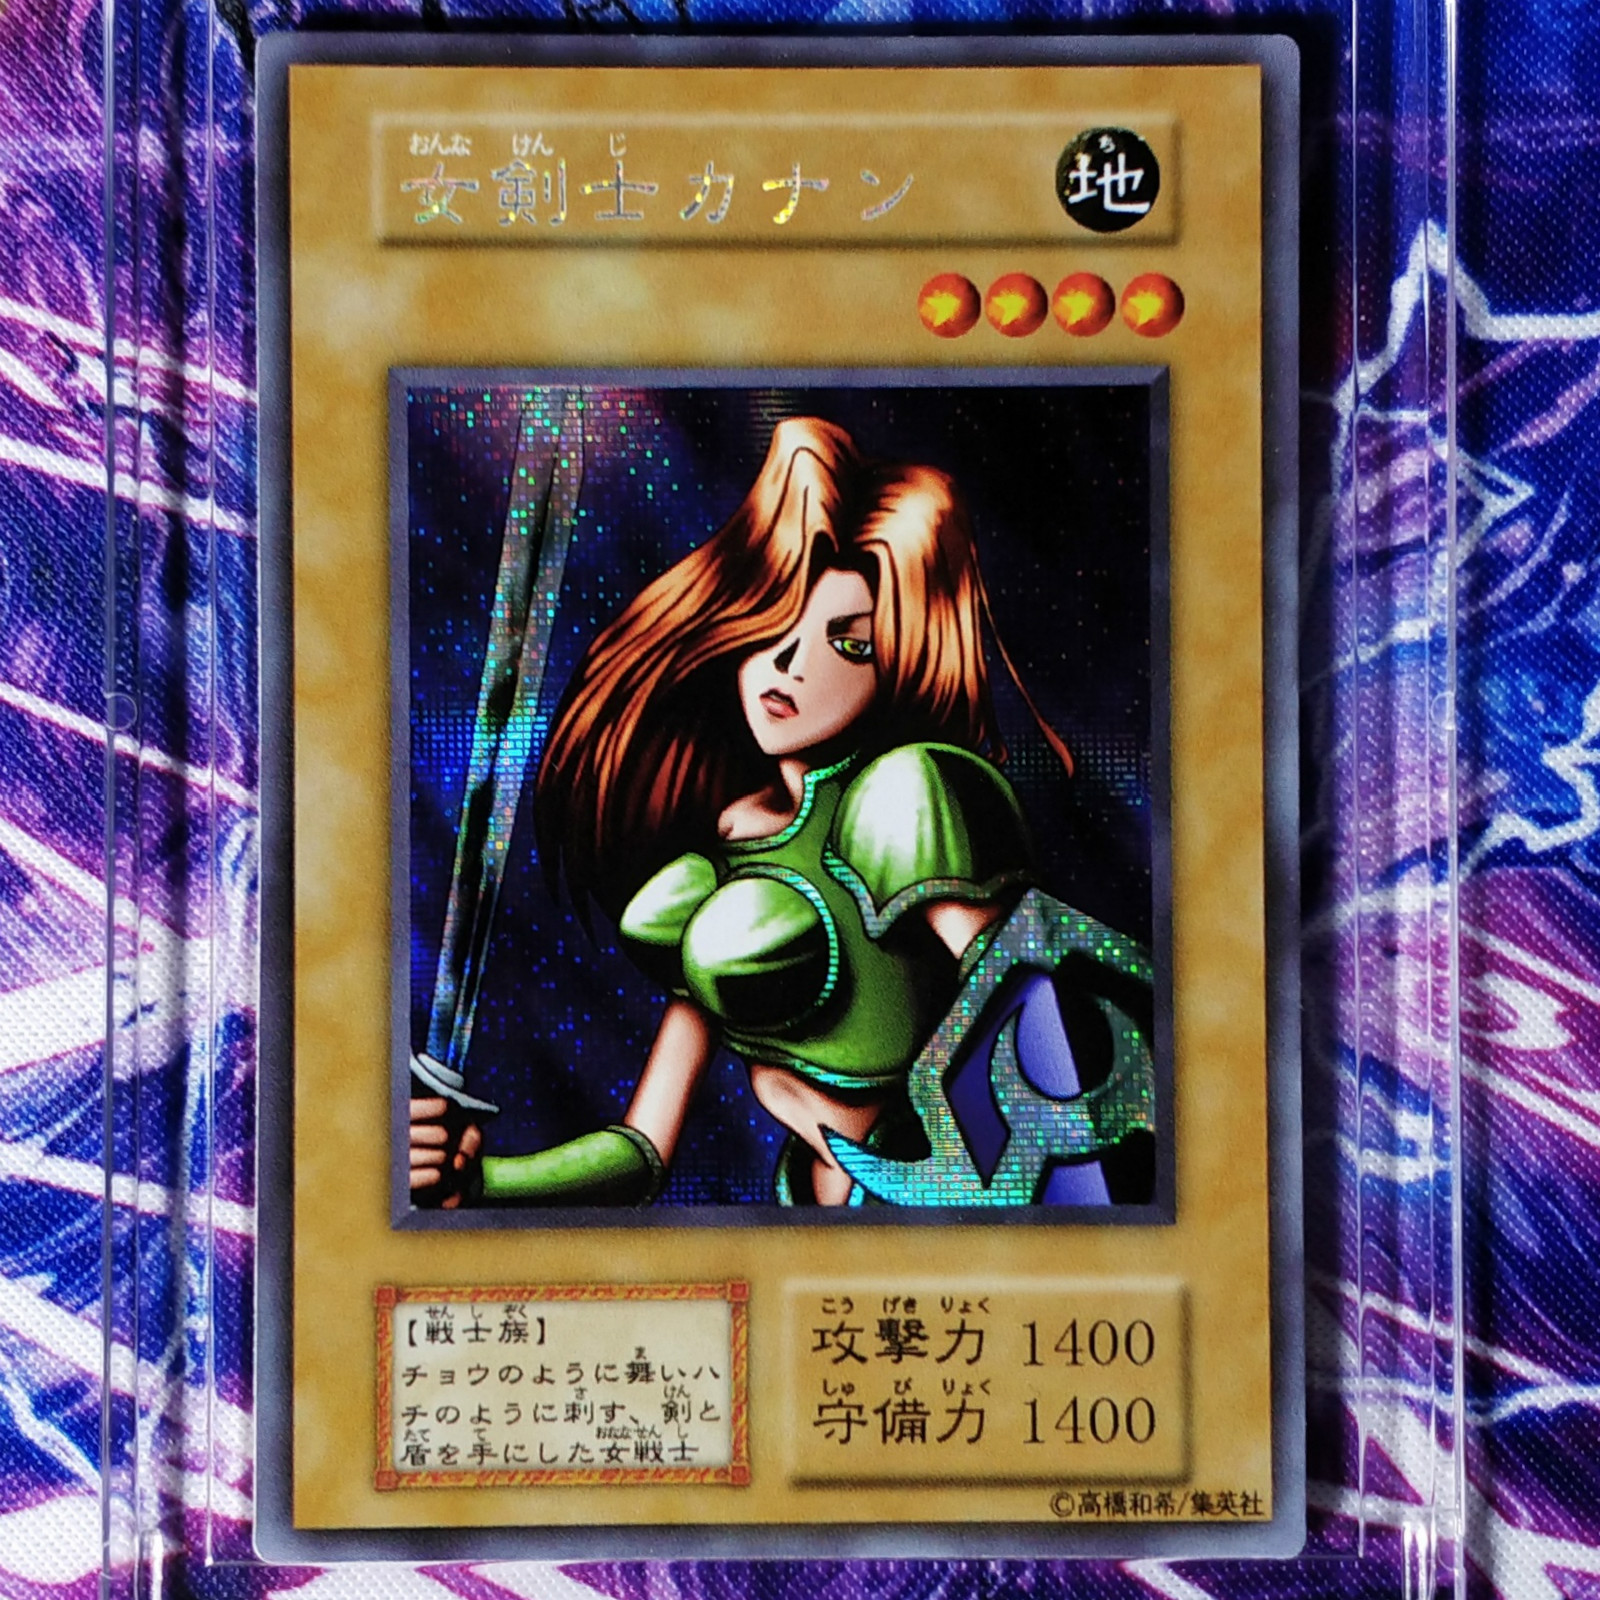 Yu Gi Oh Kanan The Swordmistress DIY Colorful Toys Hobbies Hobby Collectibles Game Collection Anime Cards